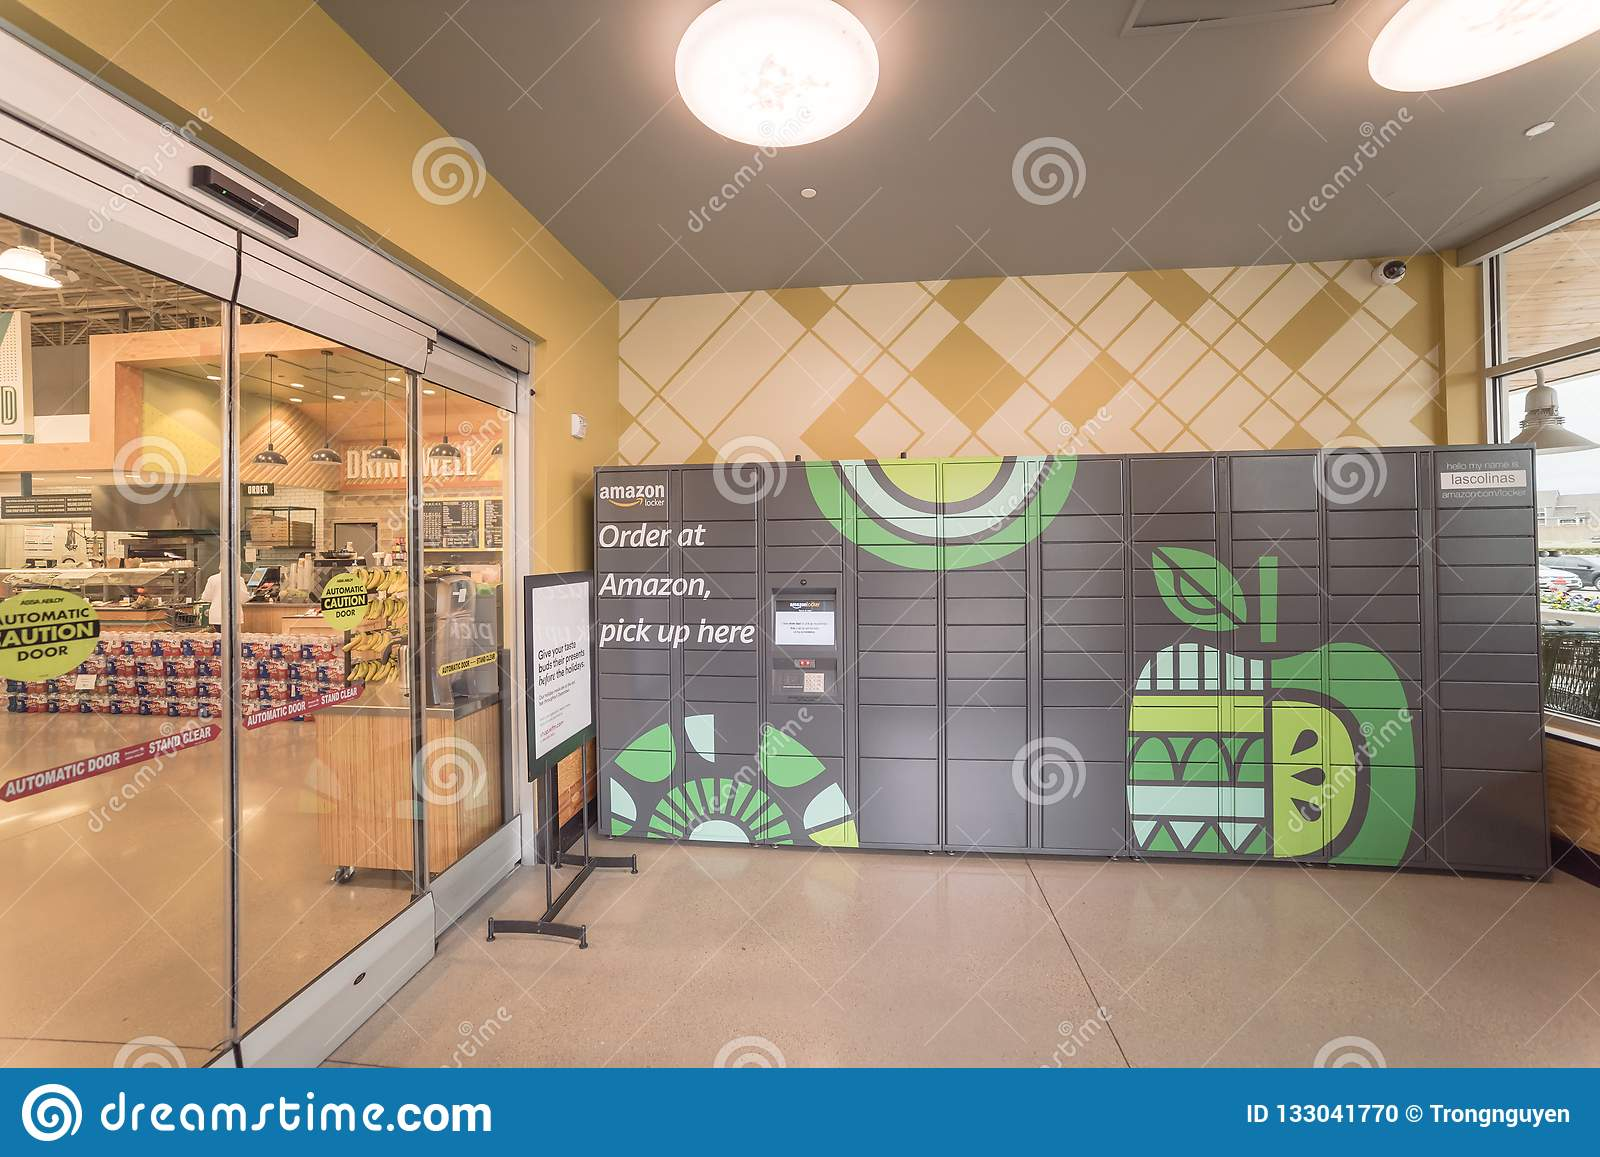 Amazon Locker self-service parcel delivery, pickup at Whole Food